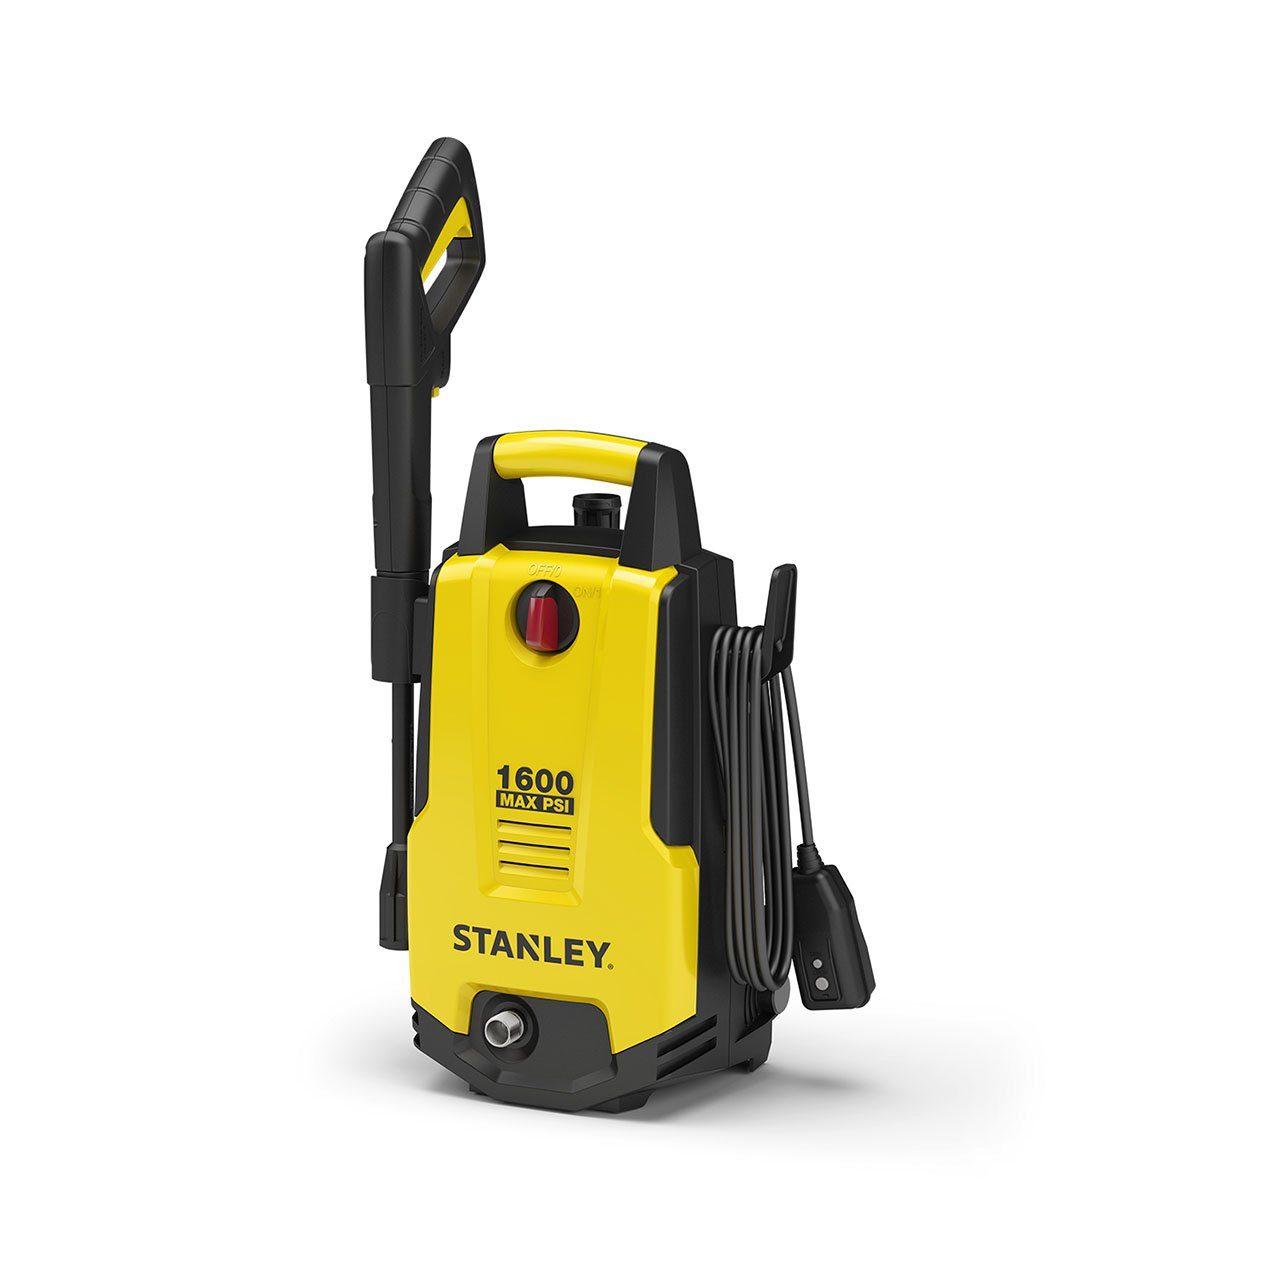 Stanley SHP1600 1600 Psi Electric Pressure Washer with Vari-Spray Nozzle, Wand, Spray Gun, 20' Hose & Detergent Bottle, Yellow by Stanley